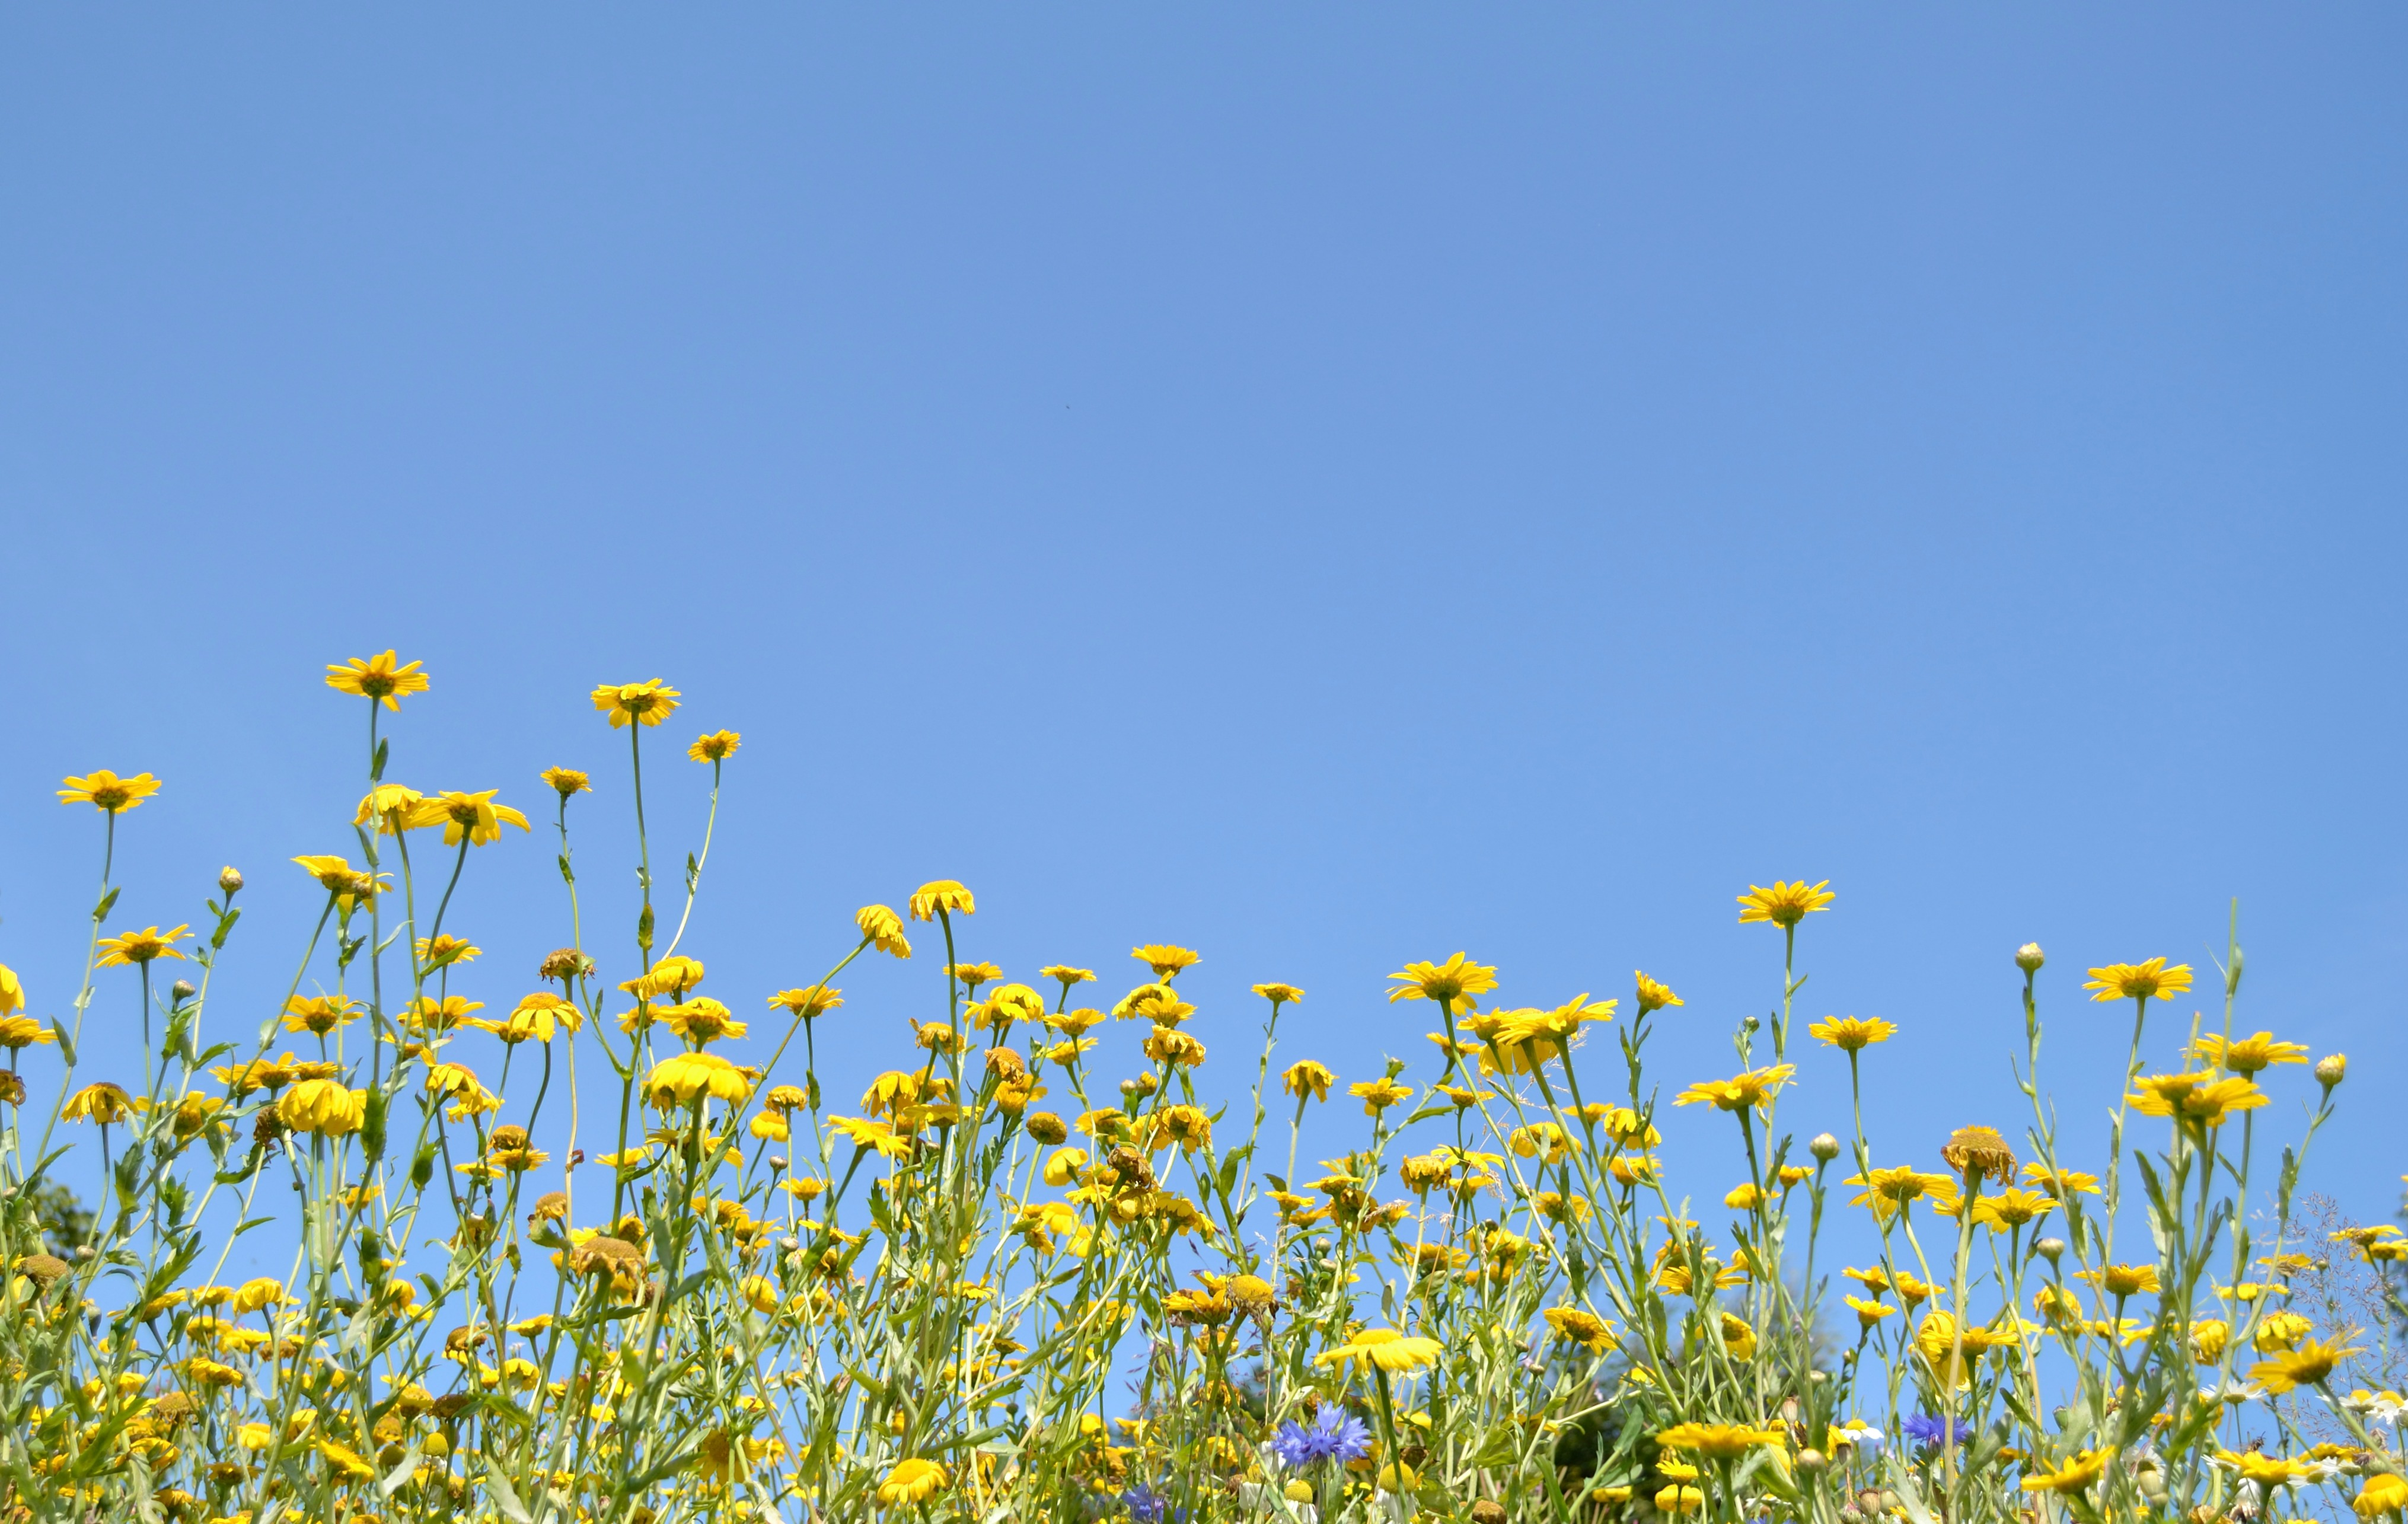 Yellow daisies, wild flowers & blue skies at Figgate Park, Portobello.